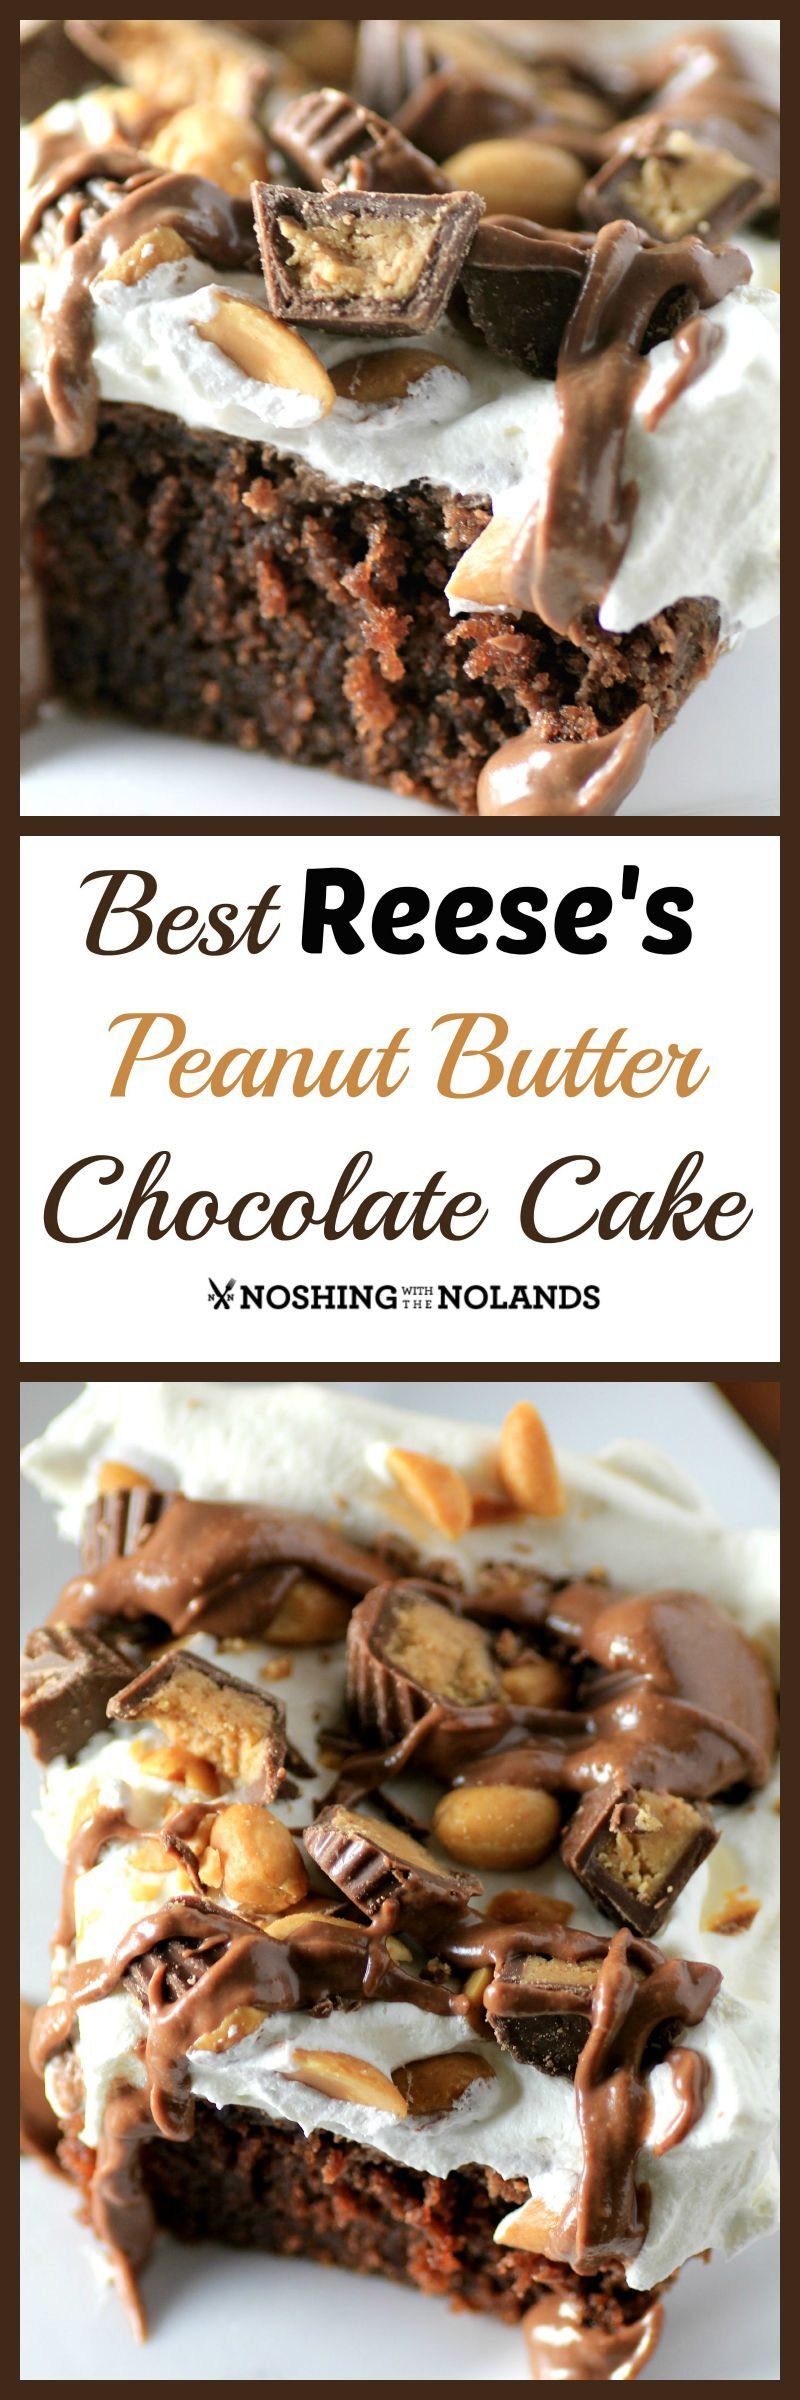 Best Reese's Peanut Butter Chocolate Cake Recipe, from Noshing with the Nolands - The ultimate peanut butter and chocolate cake, this is a decadent dessert that everyone will love!